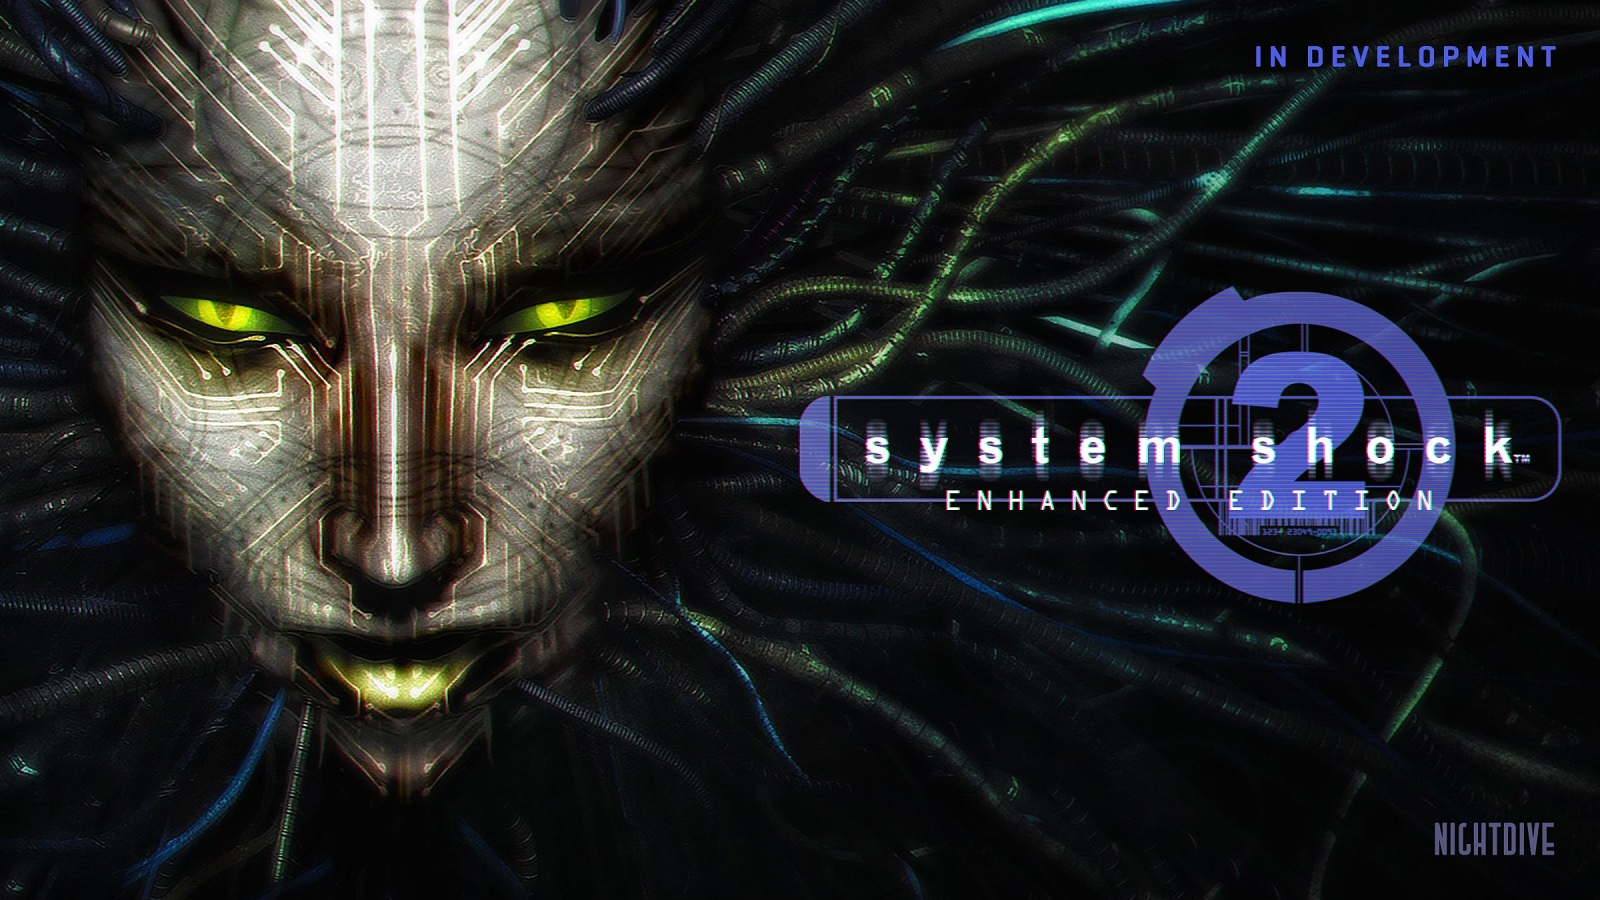 Nightdive намекнула на появление VR-режима в System Shock 2: Enhanced Edition